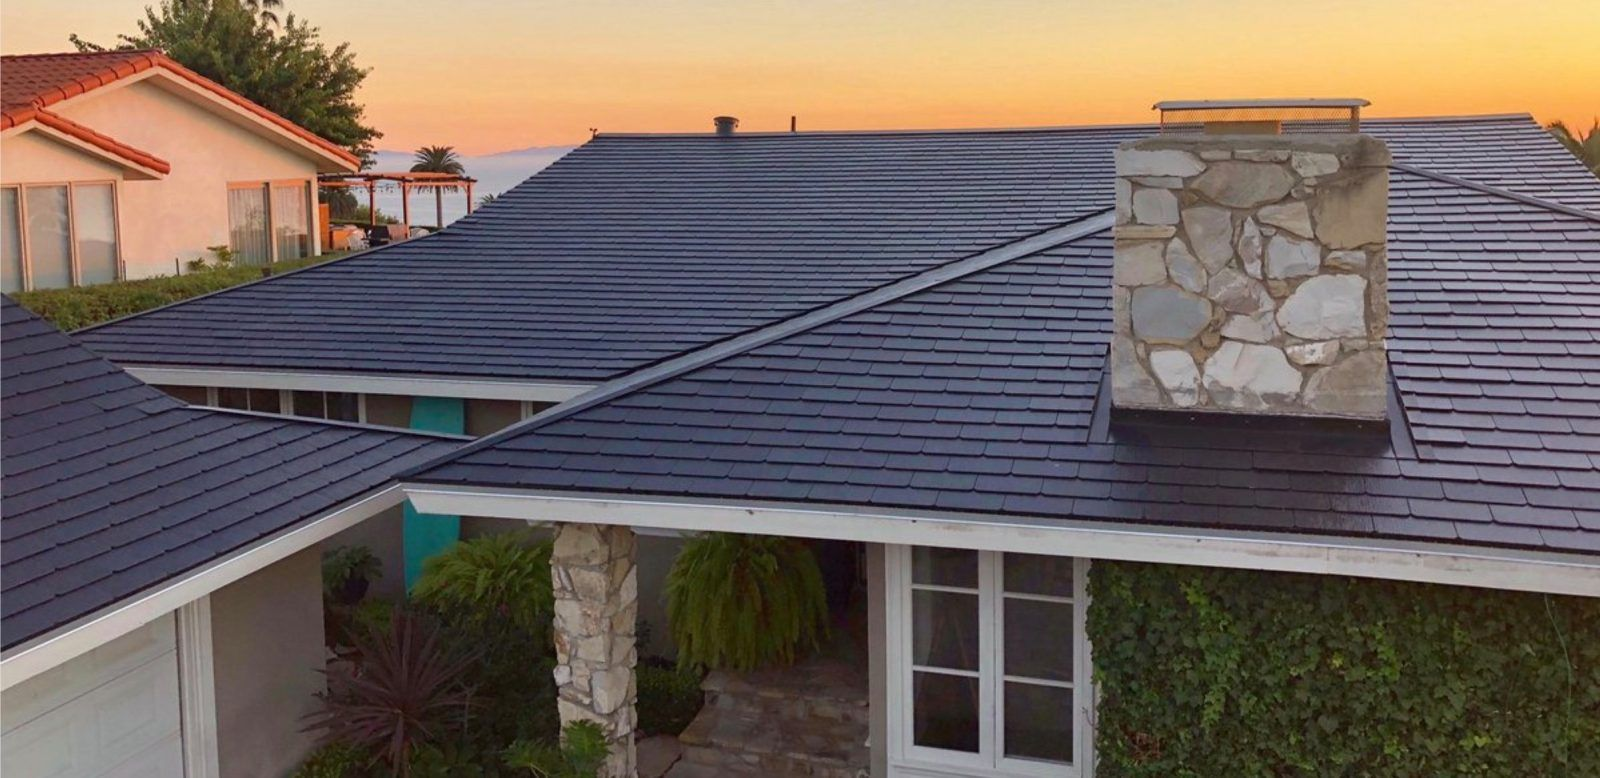 Tesla Solar Roof Volume Production Is Delayed To Next Year Tesla Roof Architectural Shingles Roof Metal Roof Houses